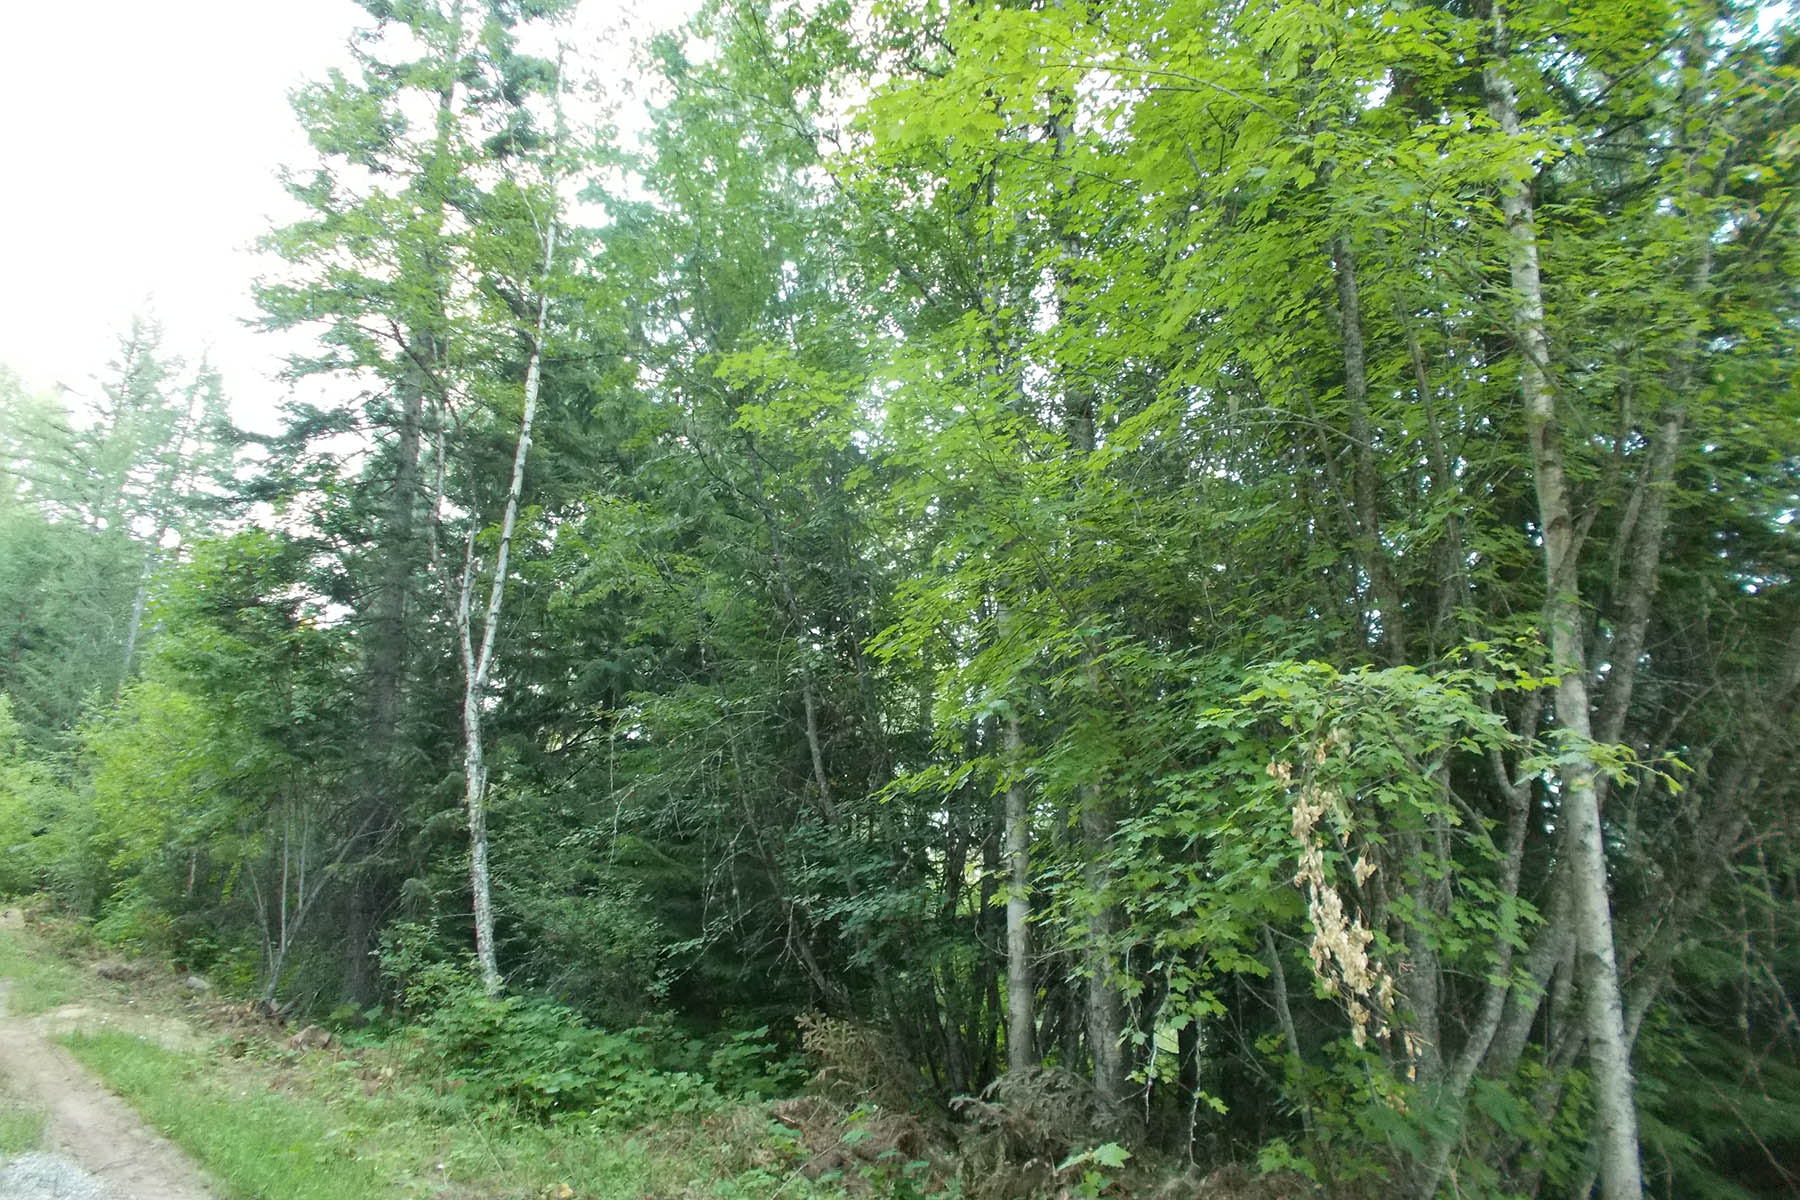 Land for Sale at Forested property just north of Sandpoint Lot 22 Scotts Lane Sandpoint, Idaho, 83864 United States